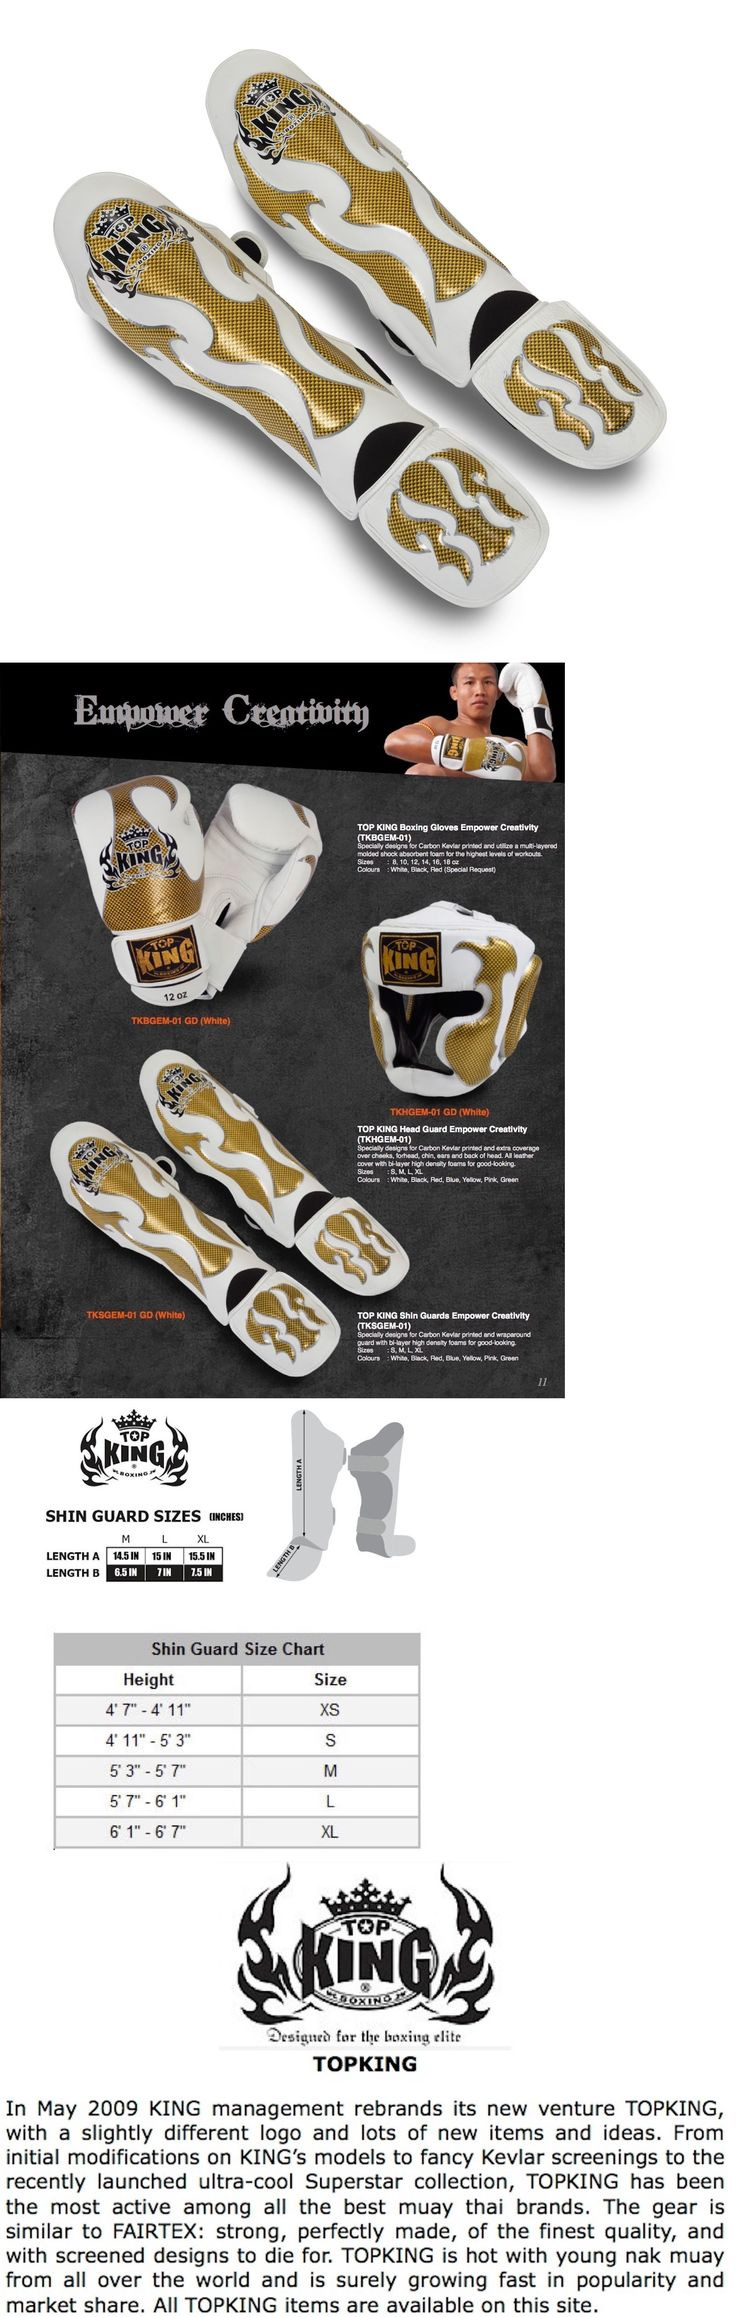 Shin Guards 179782: Top King Empower Creativity Muay Thai Shin Guards-Tksgem-01-Wh(Gold) -Leather! -> BUY IT NOW ONLY: $99.95 on eBay!